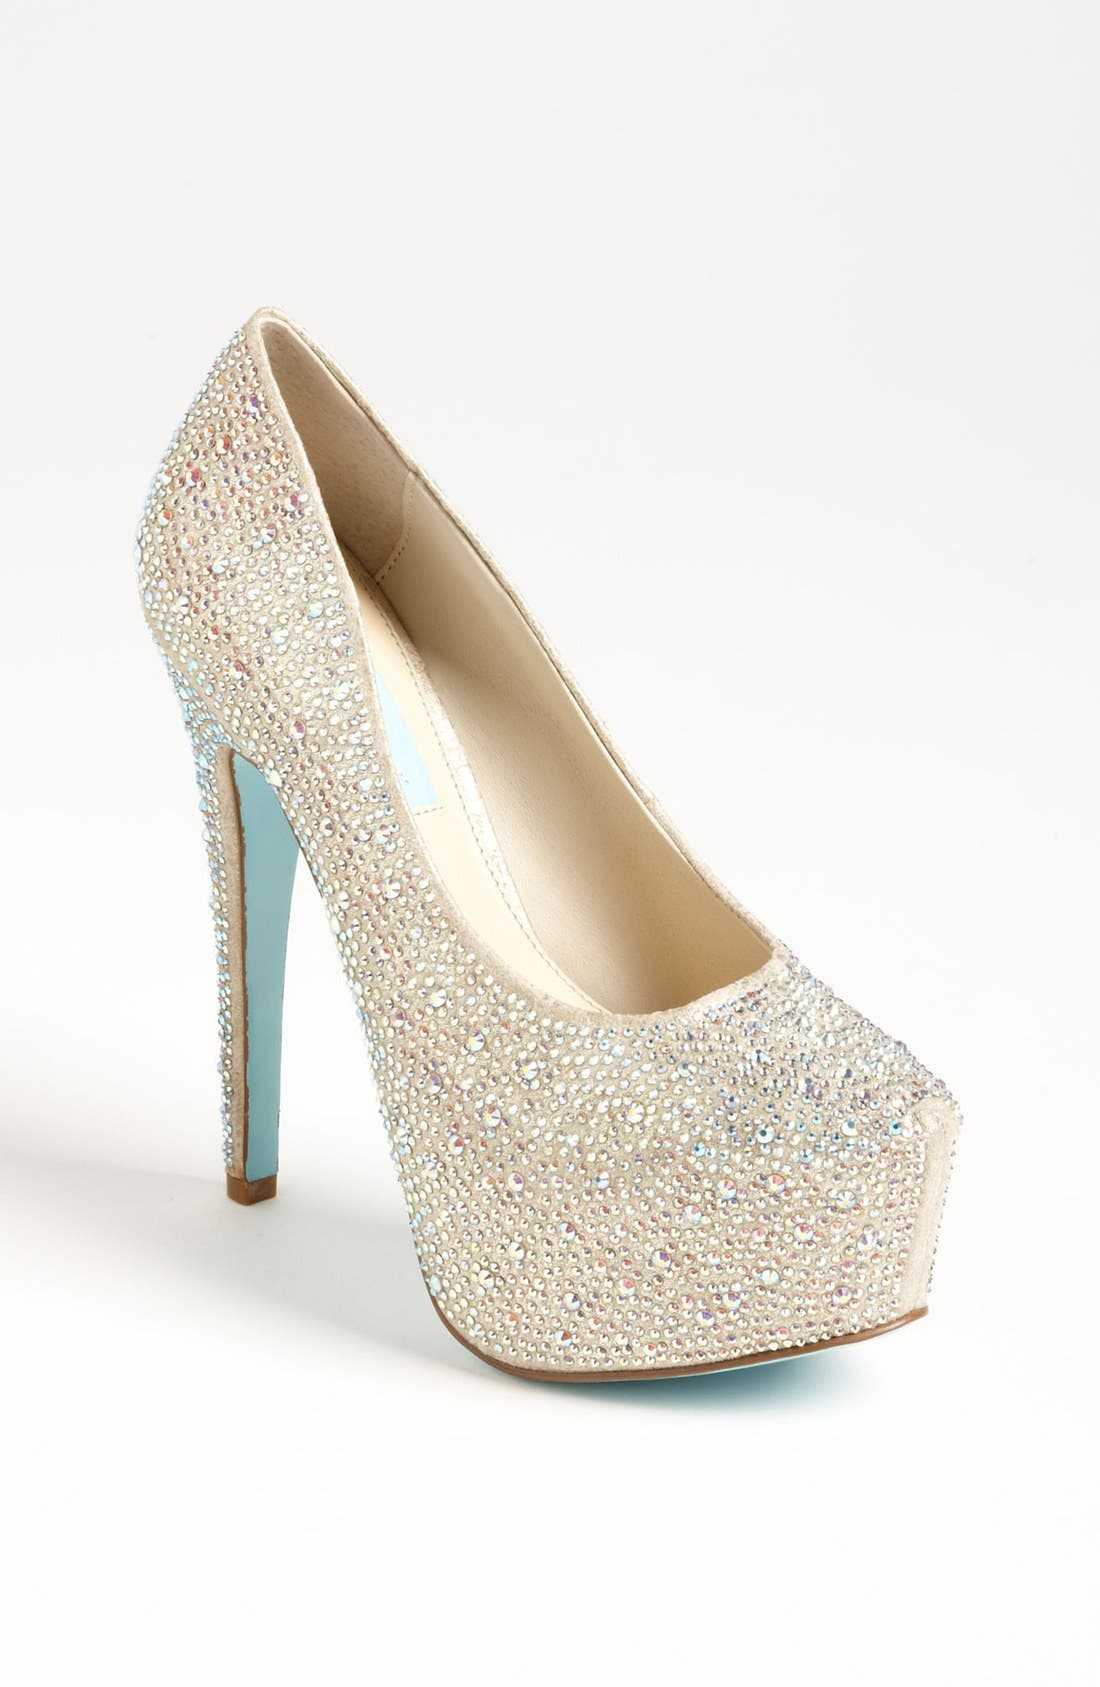 Alternate Image 1 Selected - Blue by Betsey Johnson 'Wish' Pump